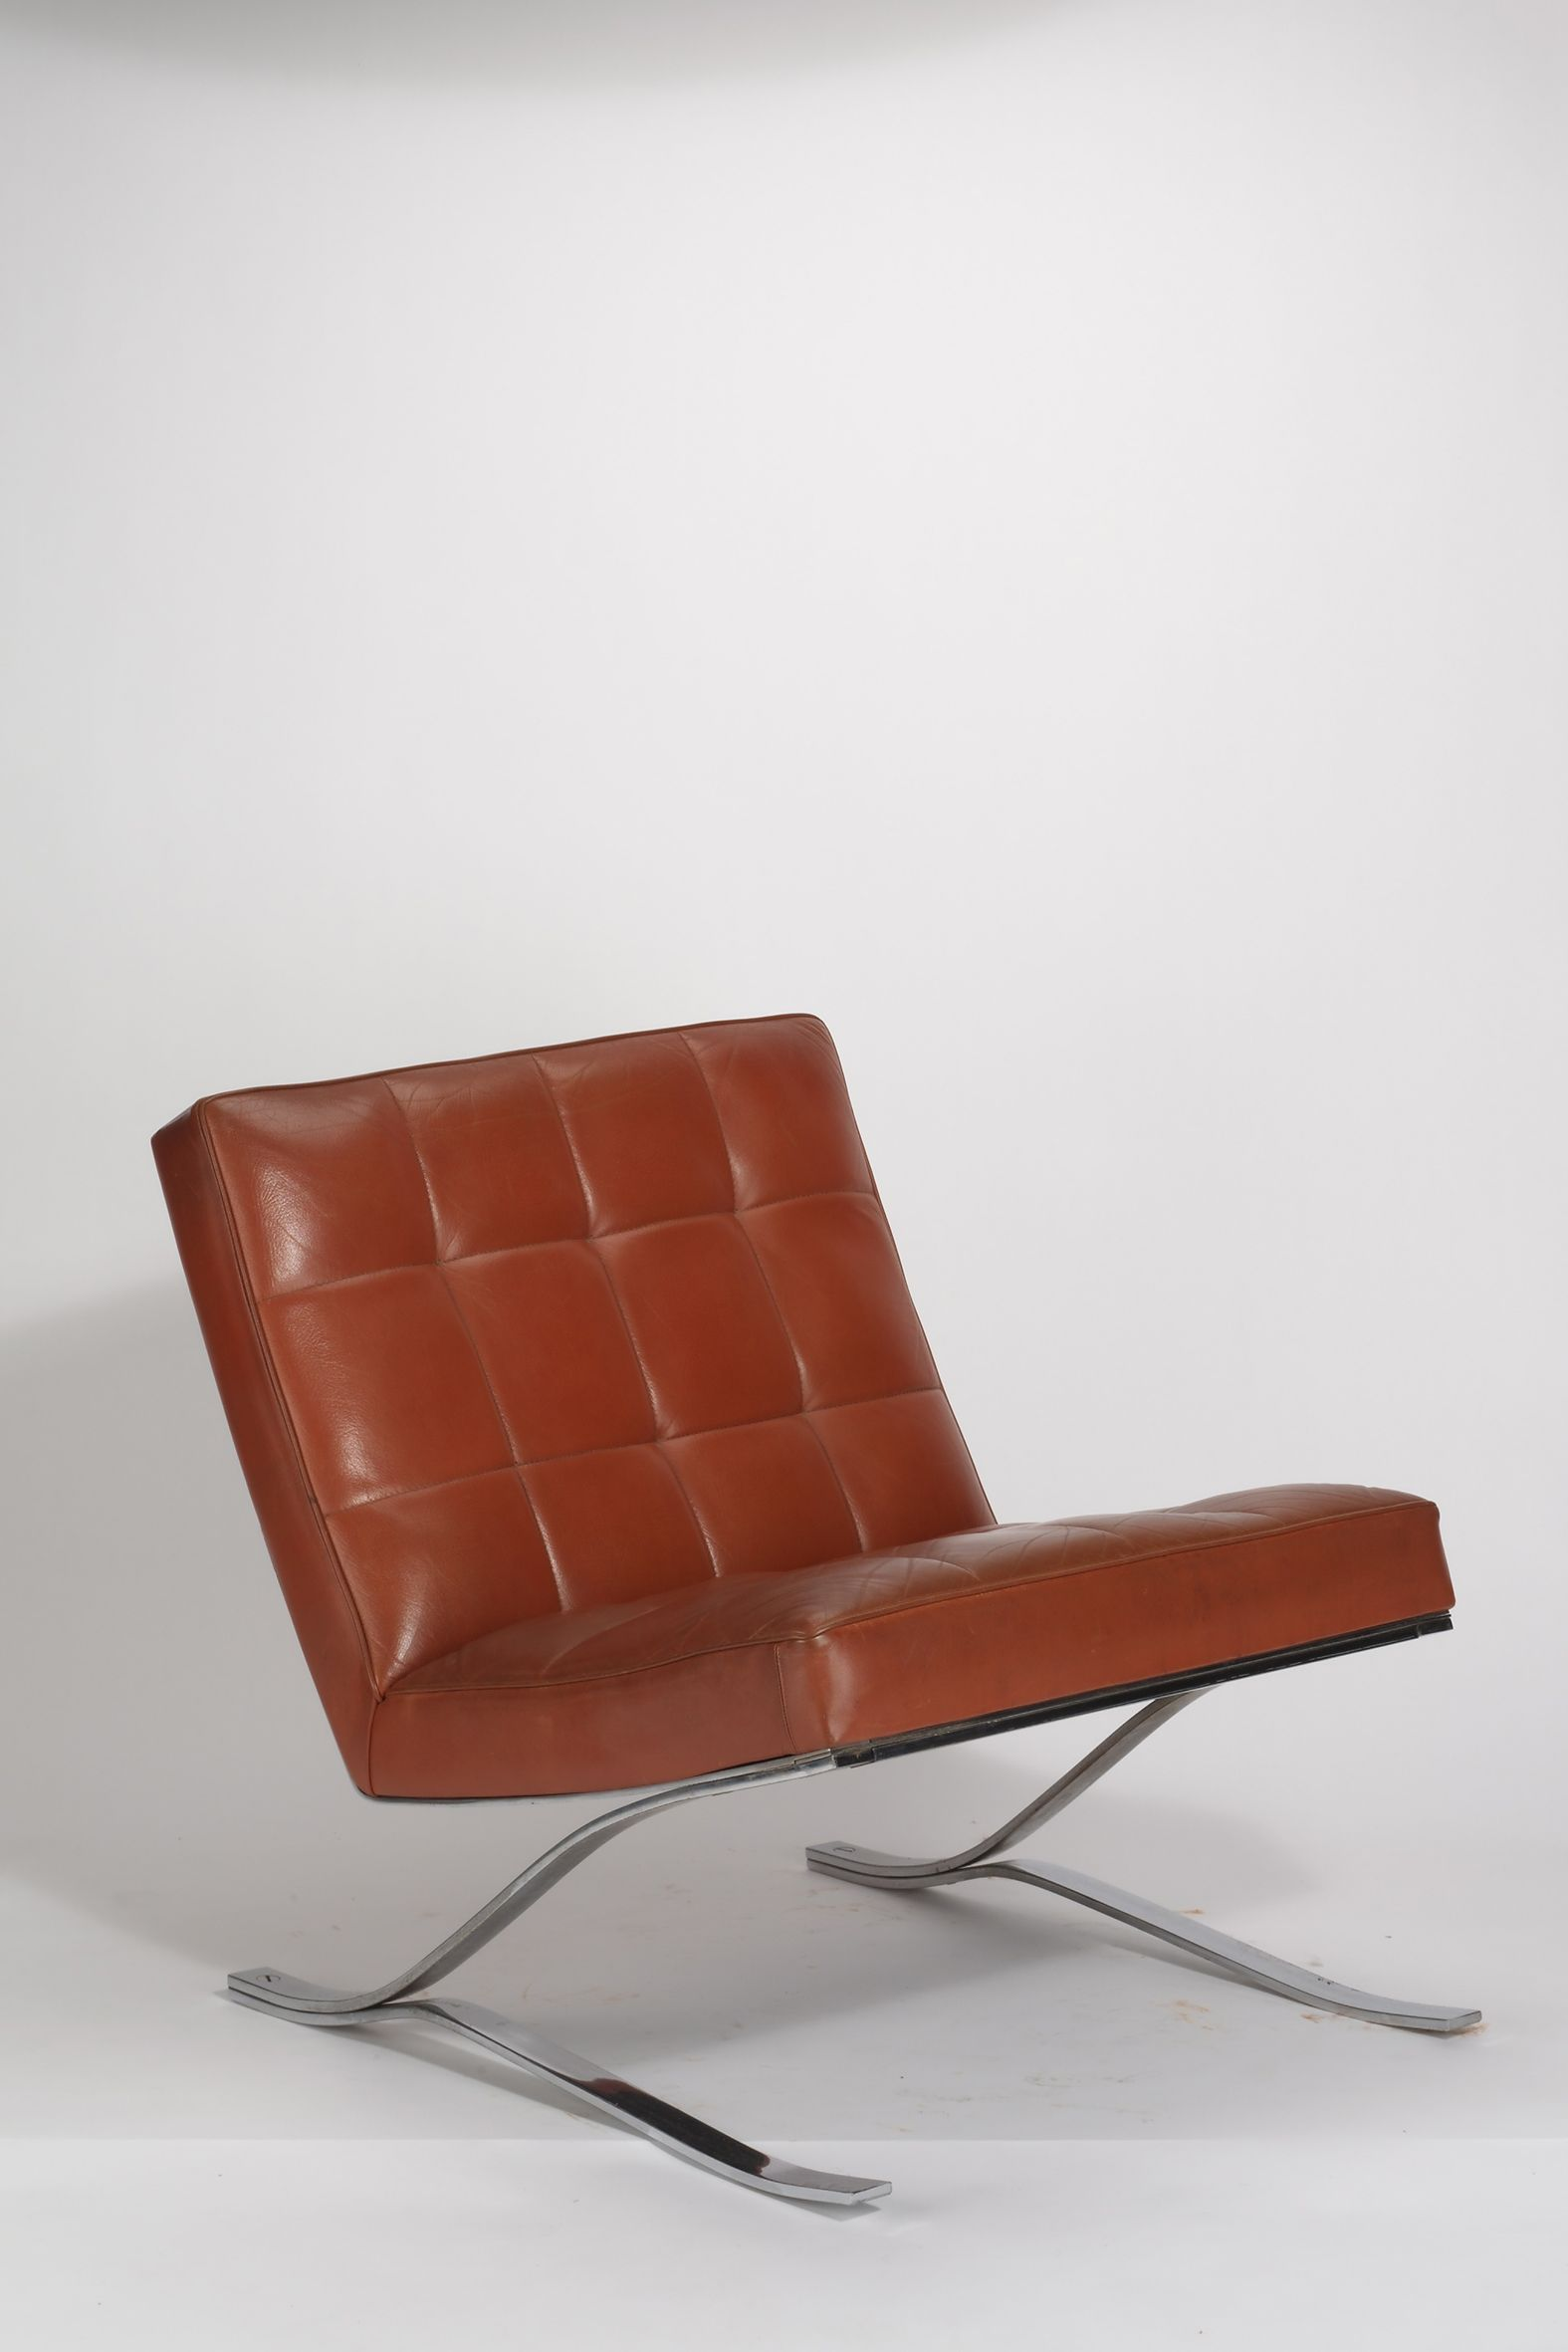 Relaxsessel Leder Sale Rudolf Horn Chromed Metal And Leather Chair For Röhl